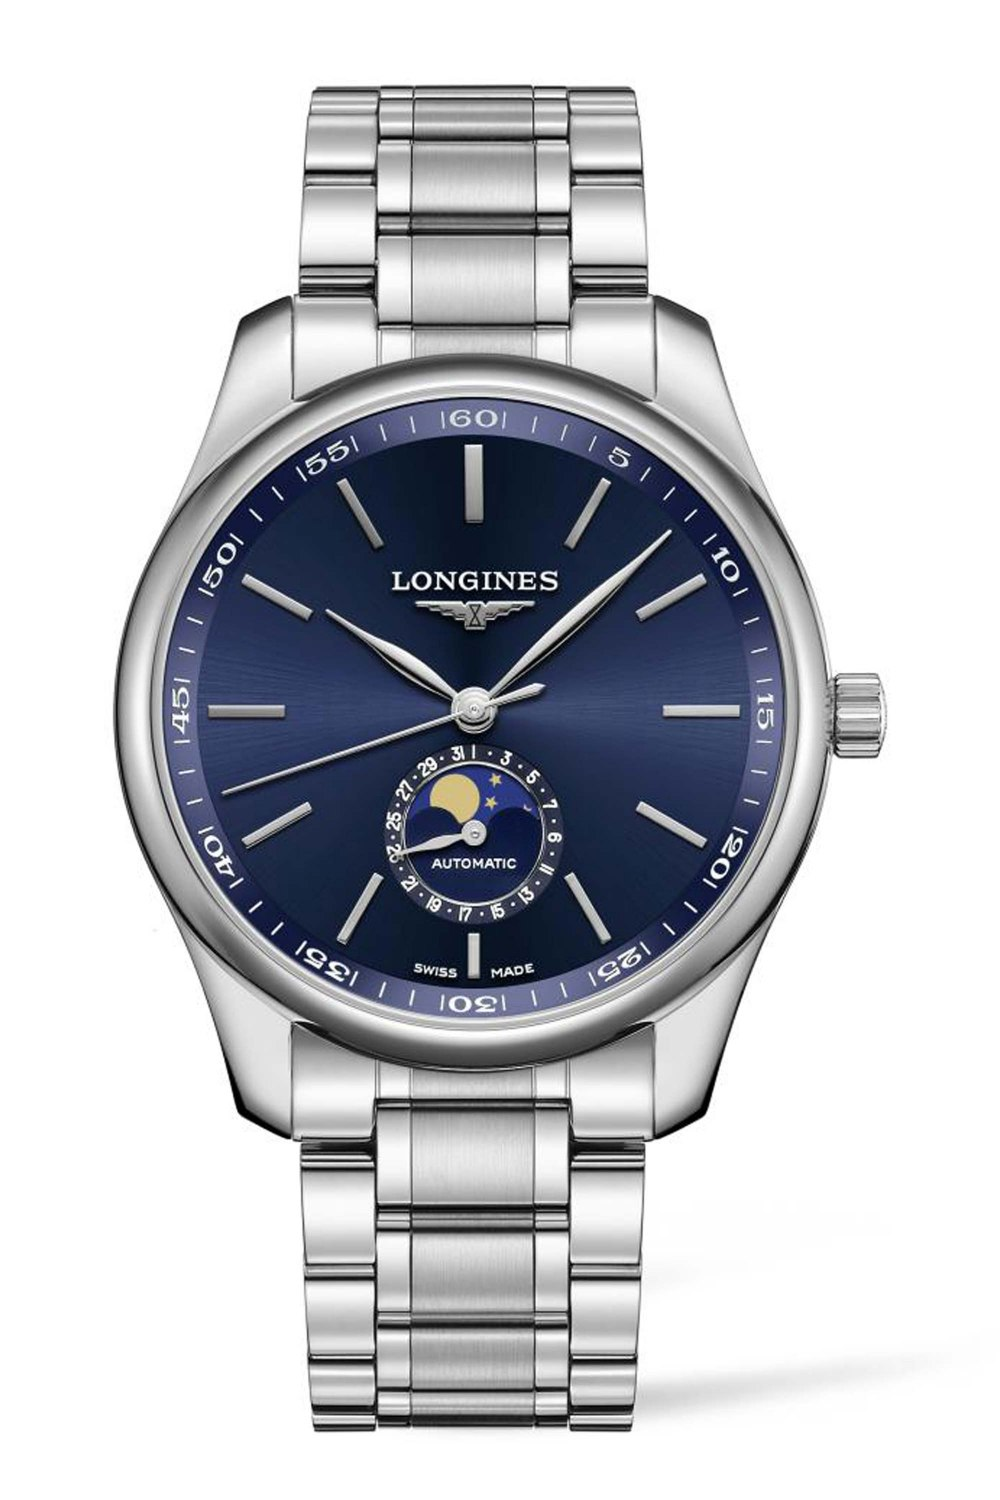 LONGINES The Longines Master Collection L2.919.4.92.6